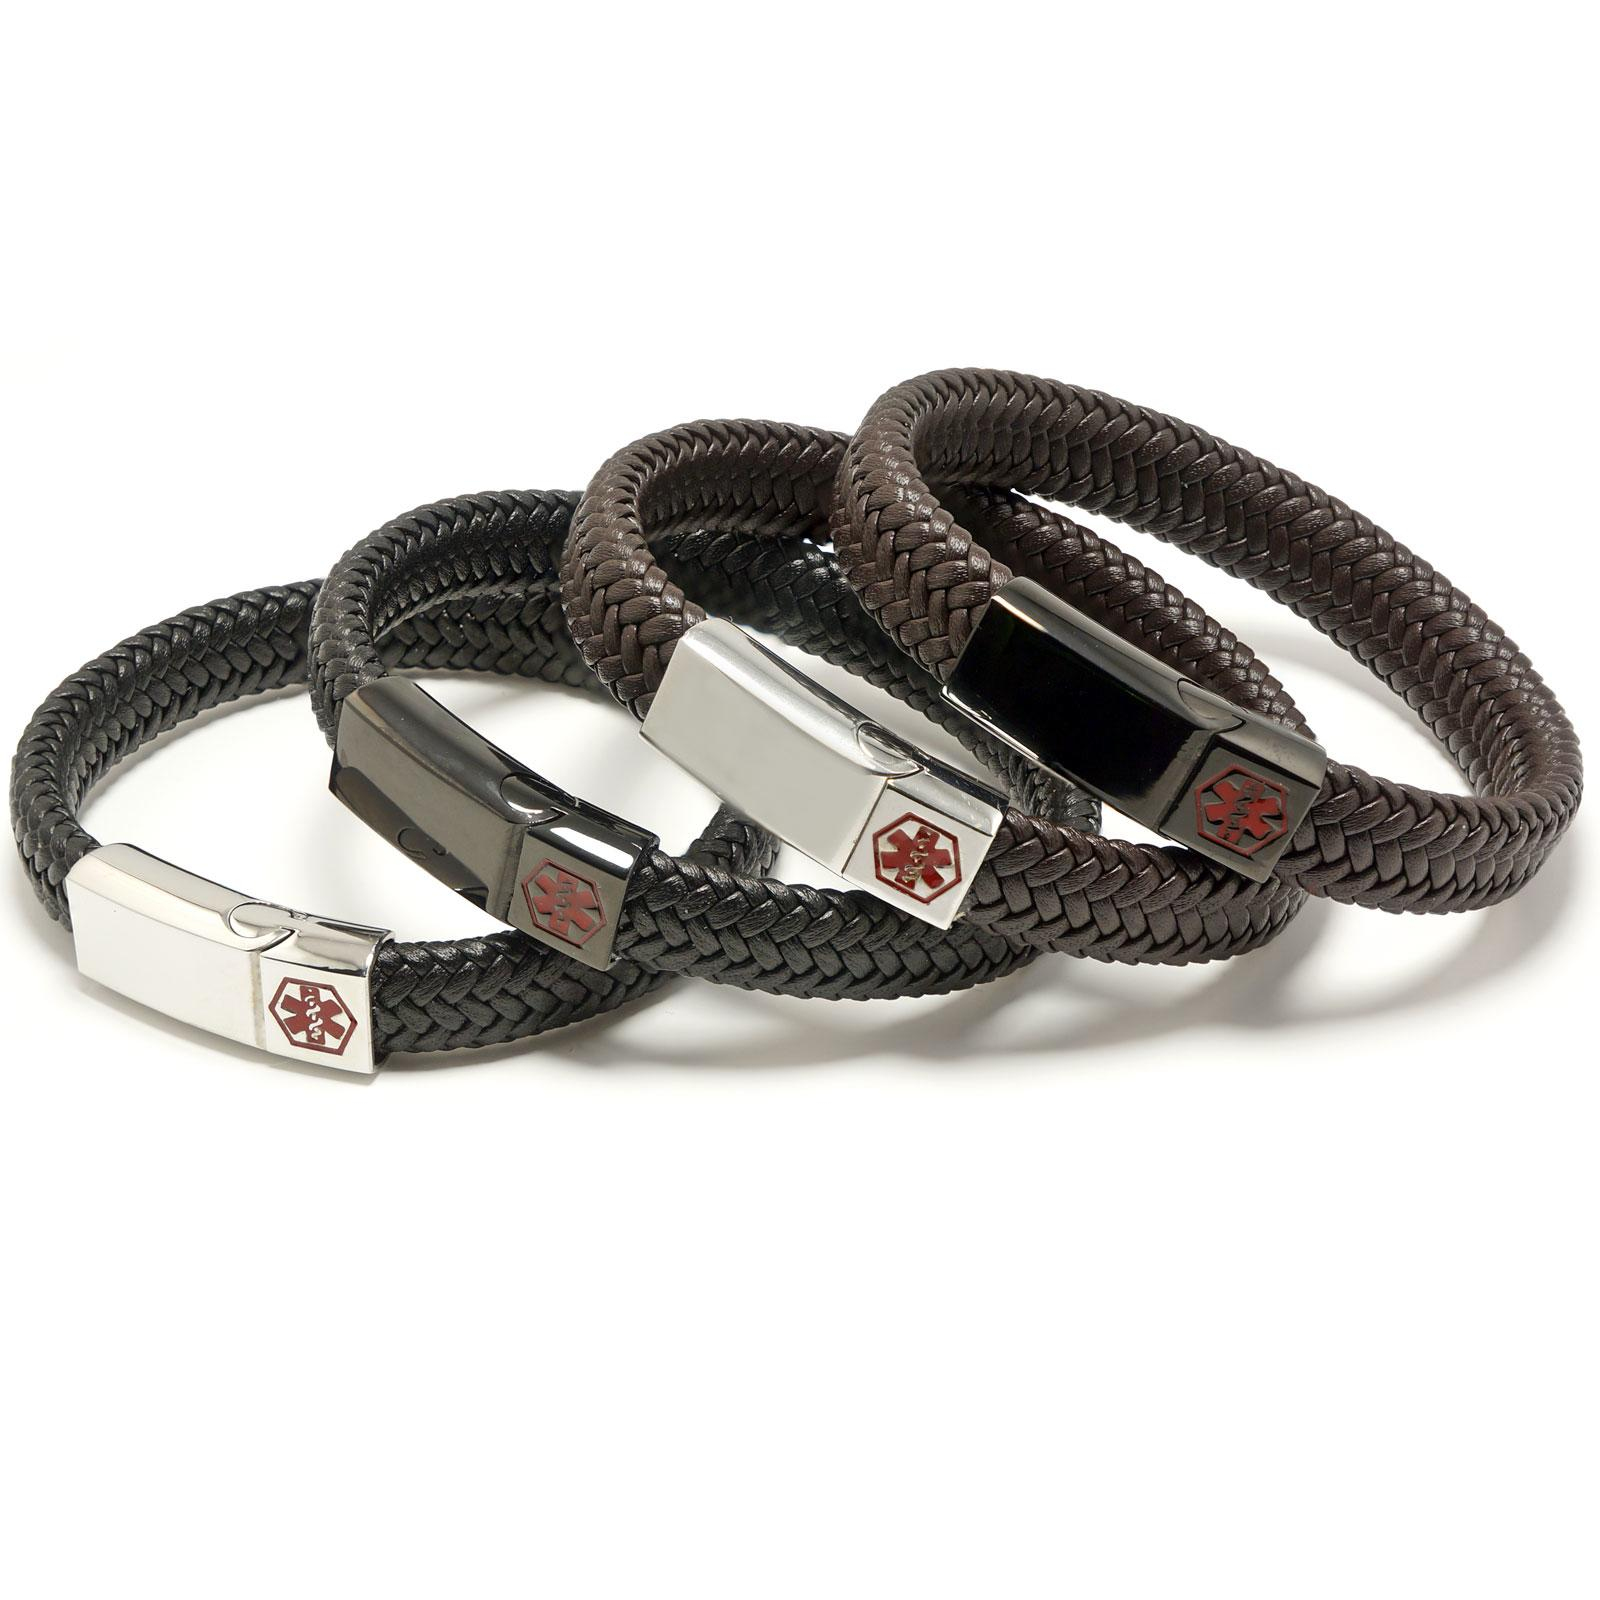 Wide Braided Leather Medical Alert ID Bracelet